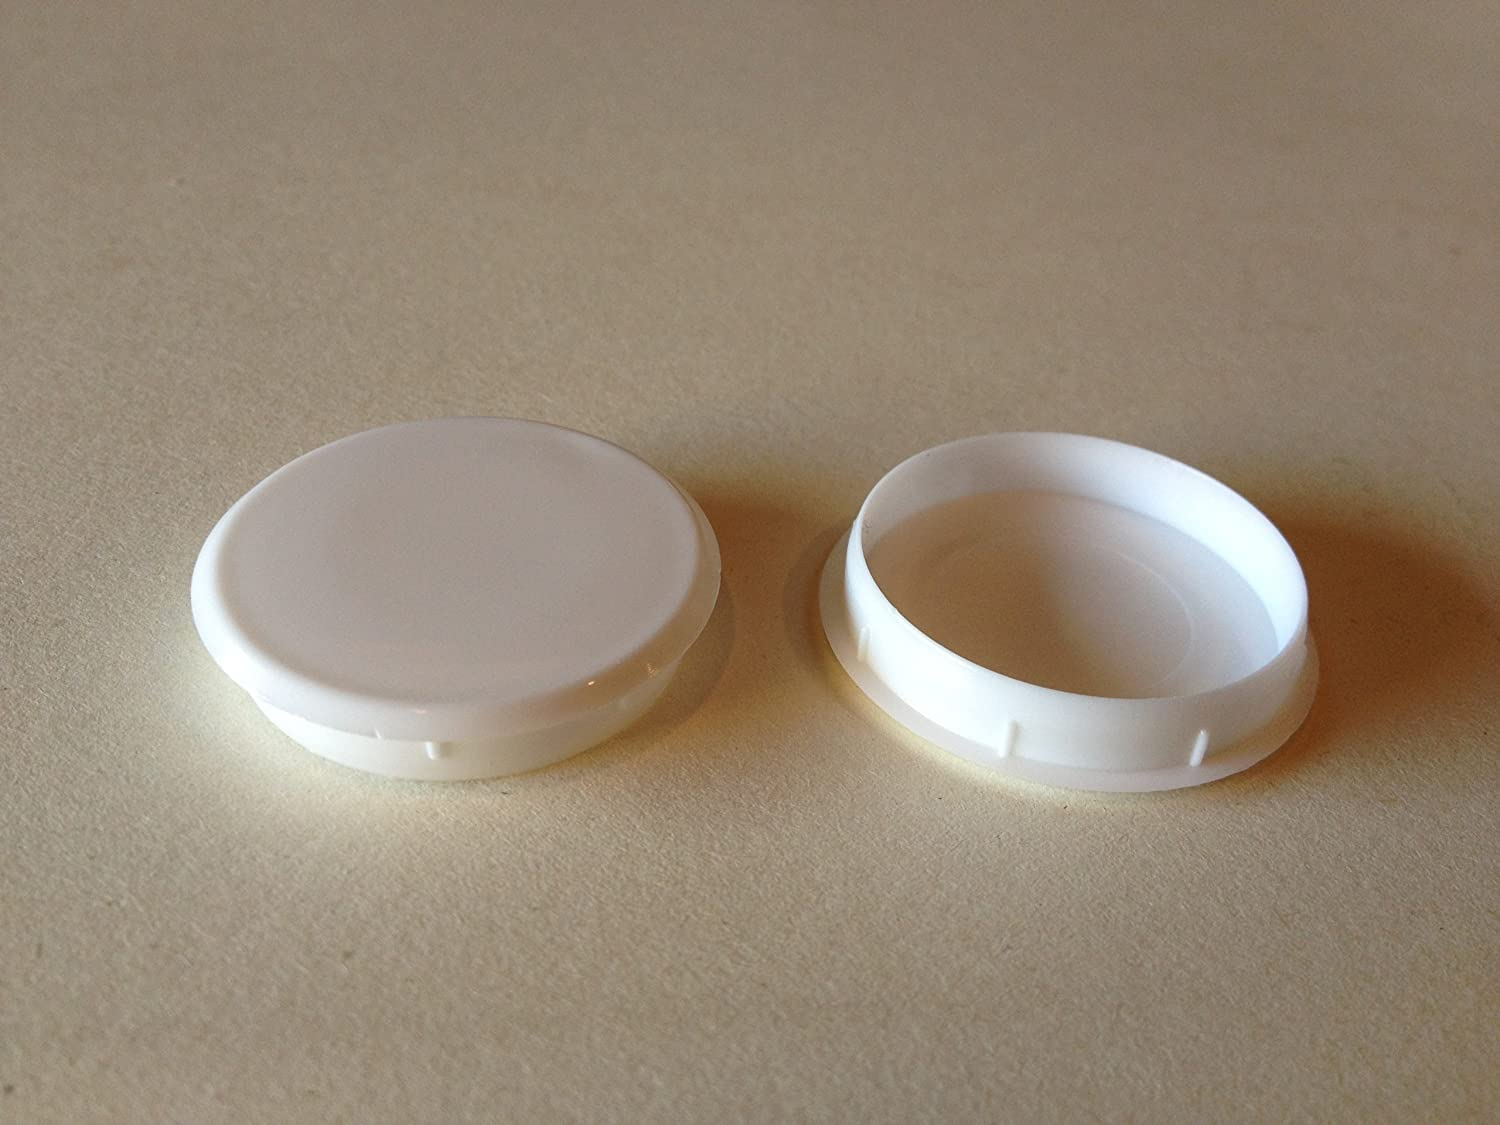 Hinge And Bracket Supplies 35Mm Hinge Hole Cover Caps 10 Pces White Colour  For Kitchen Cabinets: Amazon.co.uk: DIY U0026 Tools